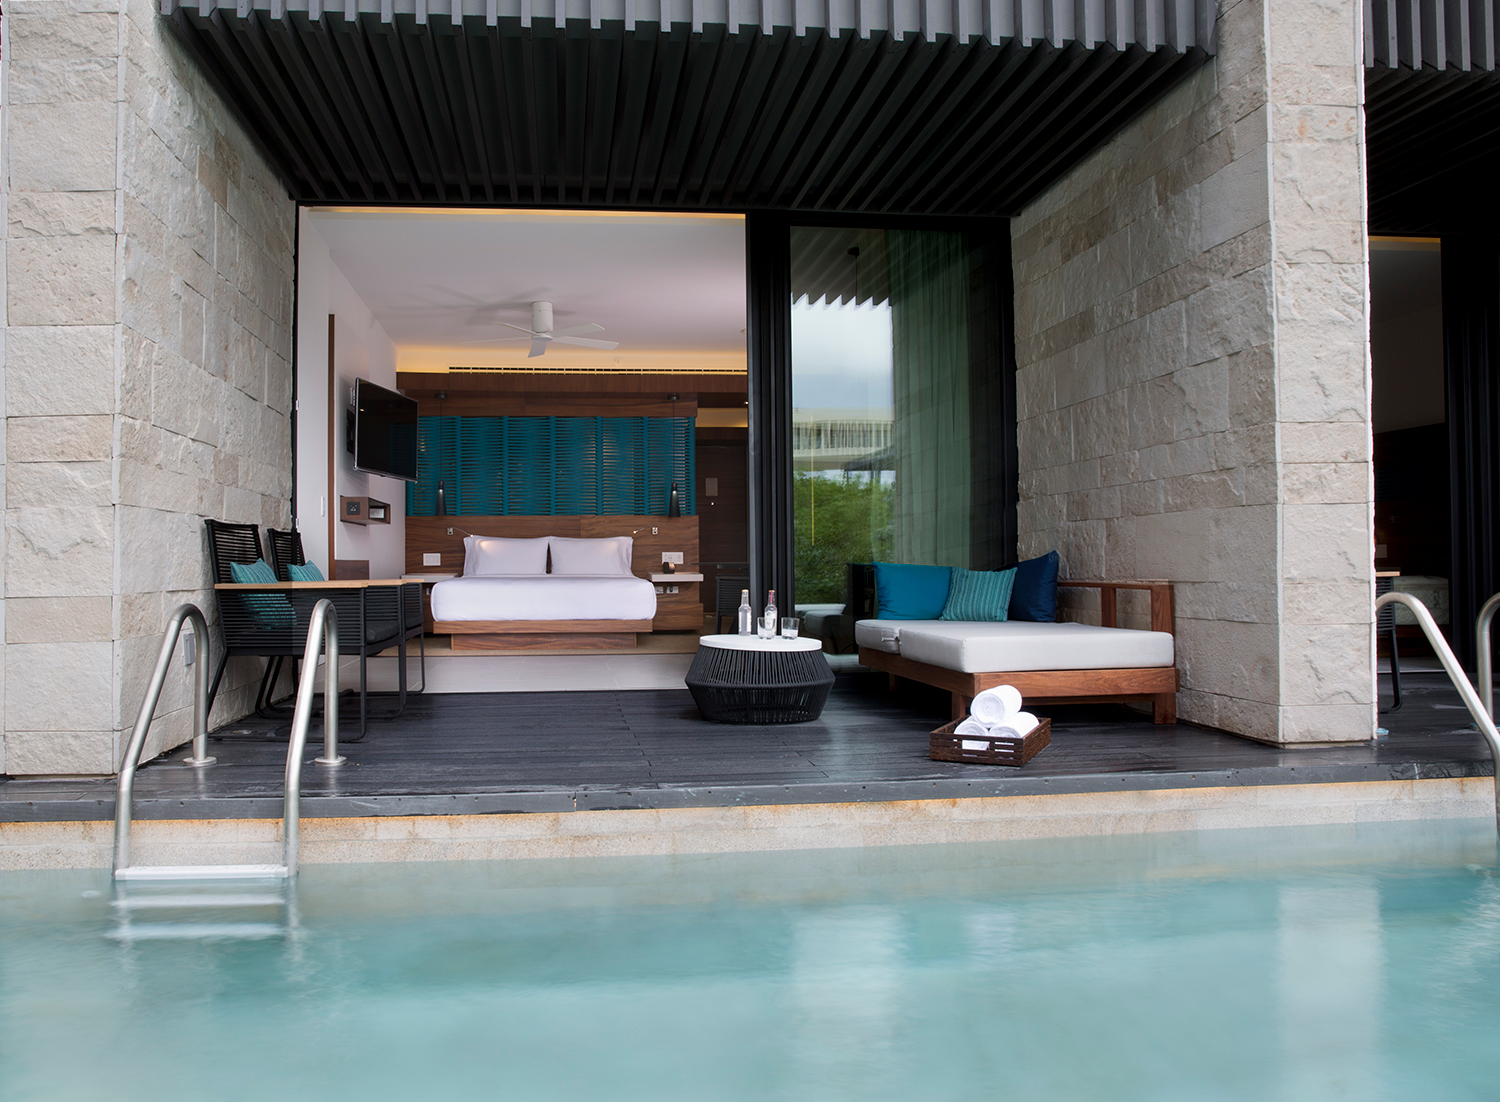 Relaxation area by the pool at Cenote Spa.